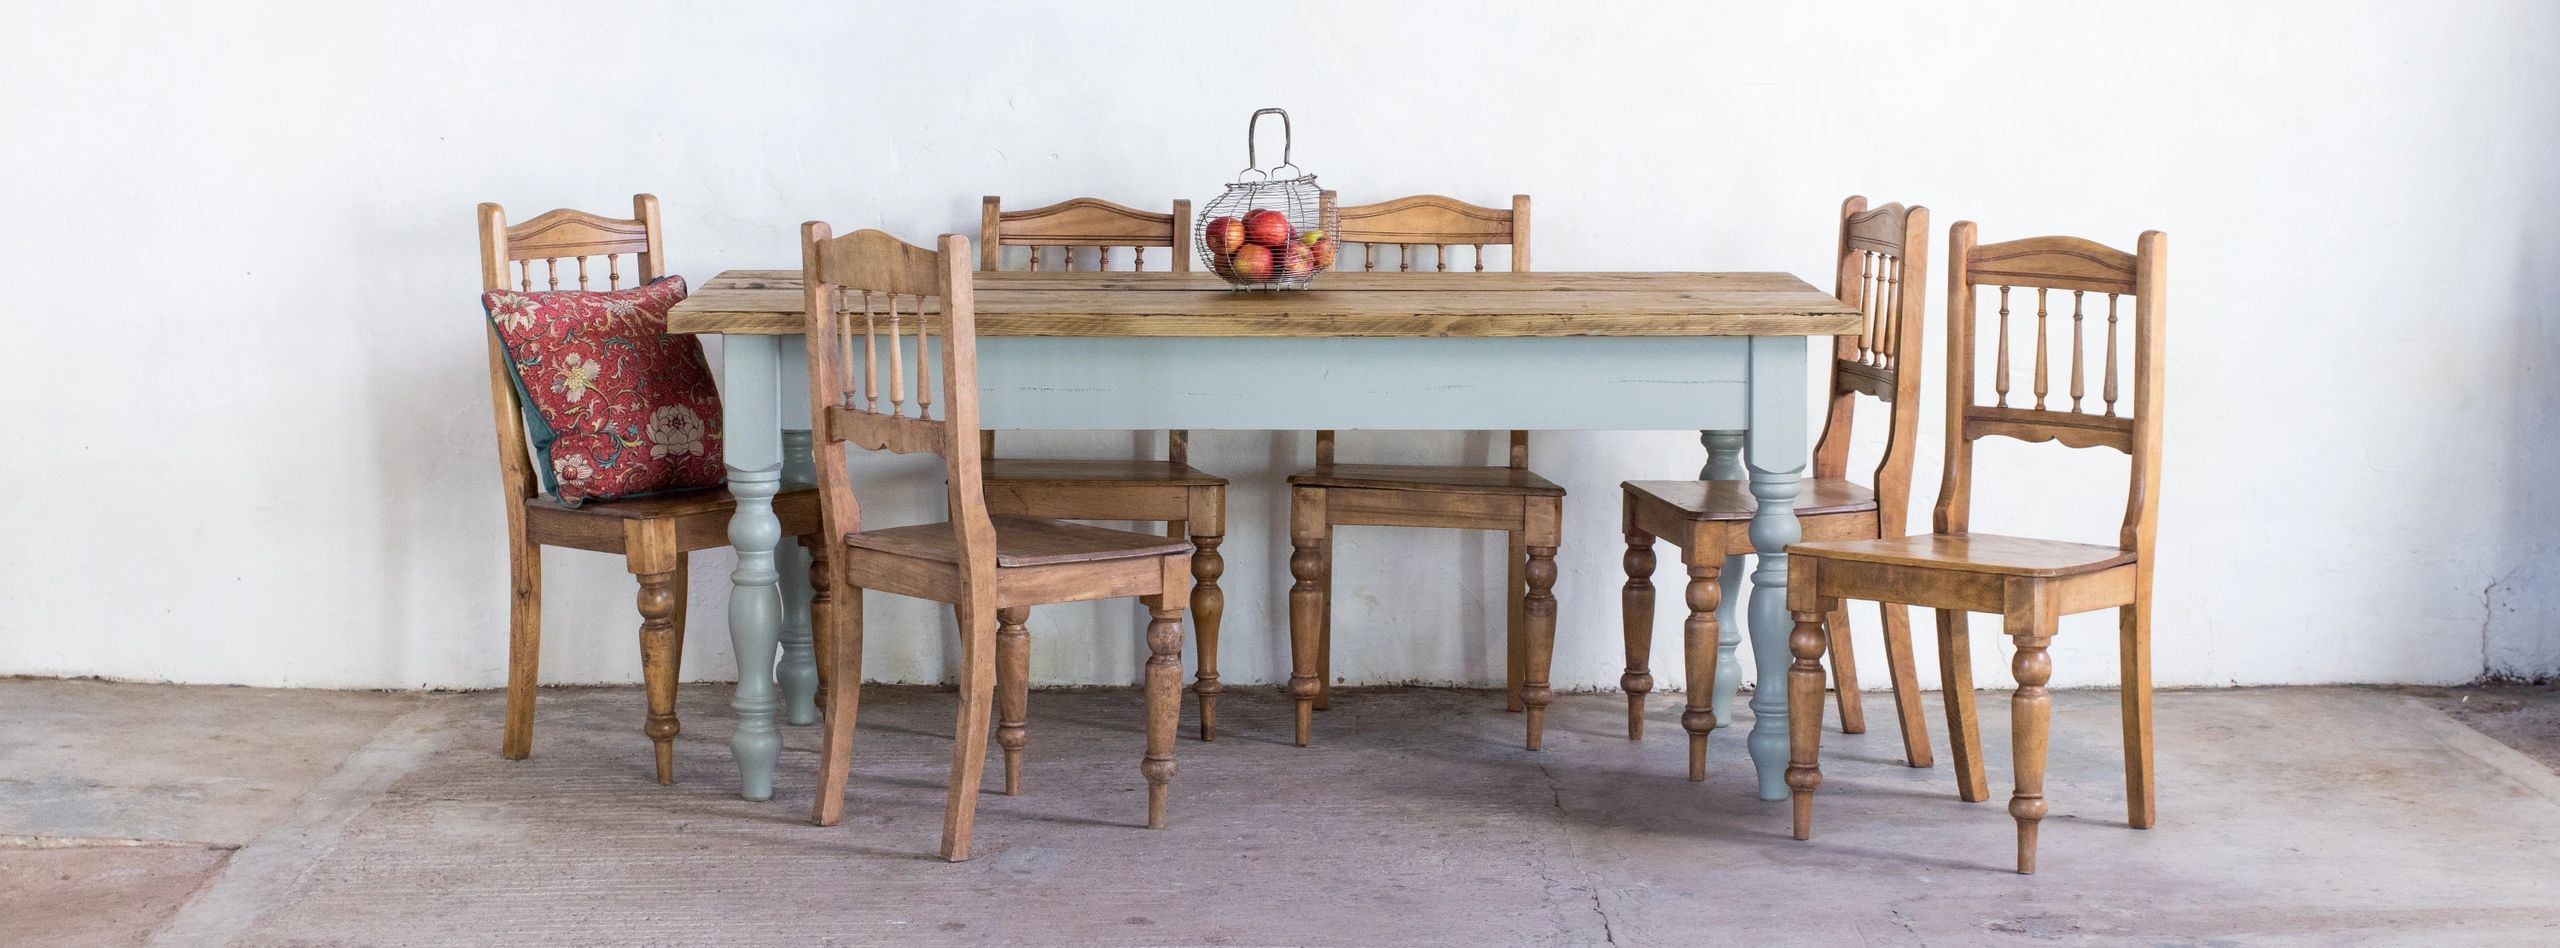 Farmhouse Dining Tables   The Rustic Table Company